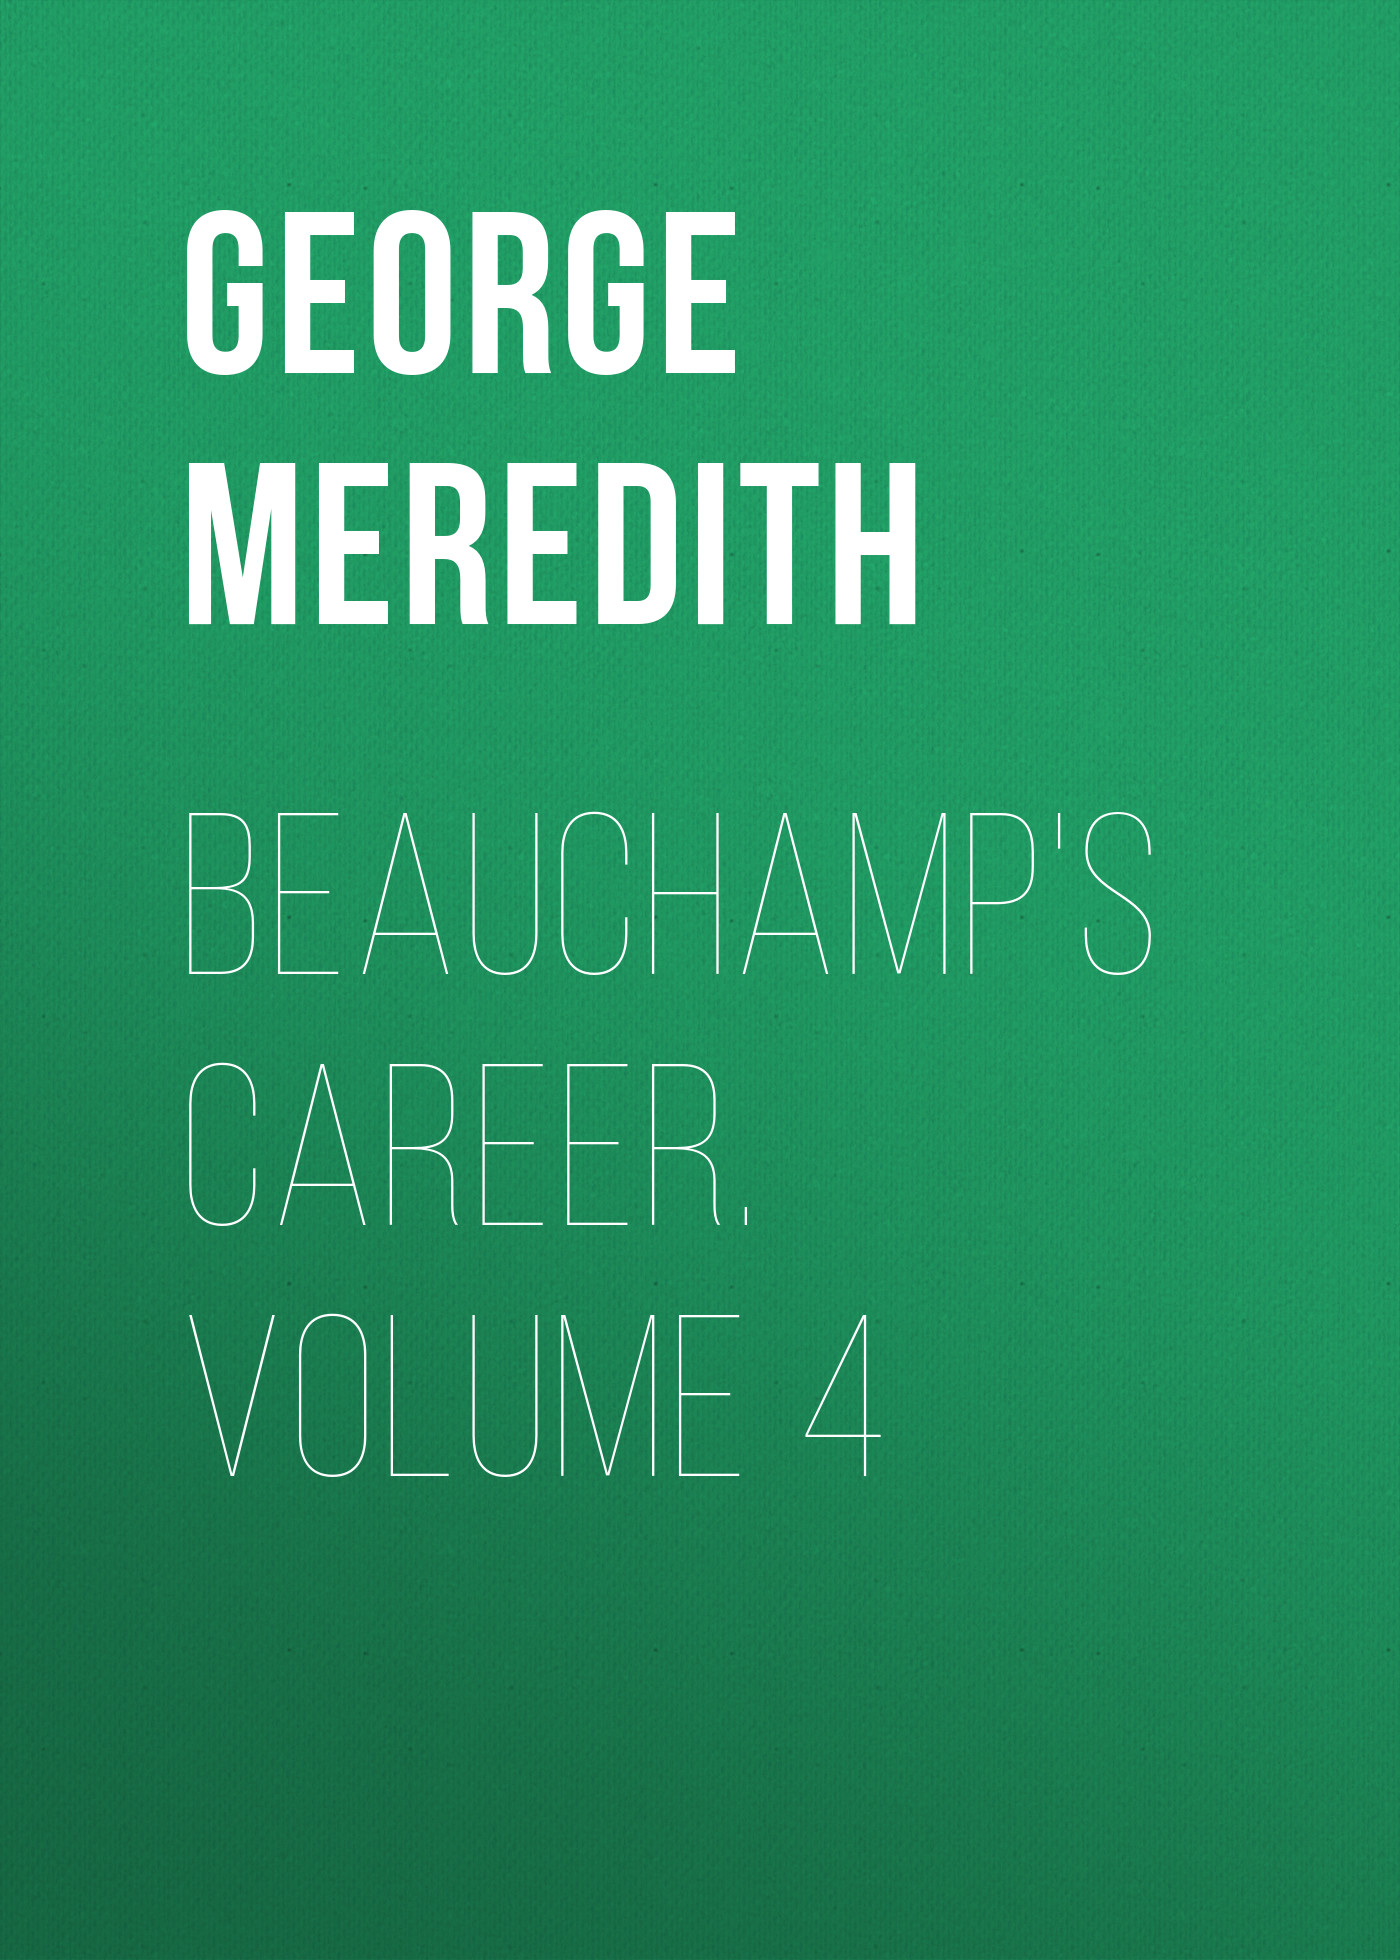 цена George Meredith Beauchamp's Career. Volume 4 в интернет-магазинах